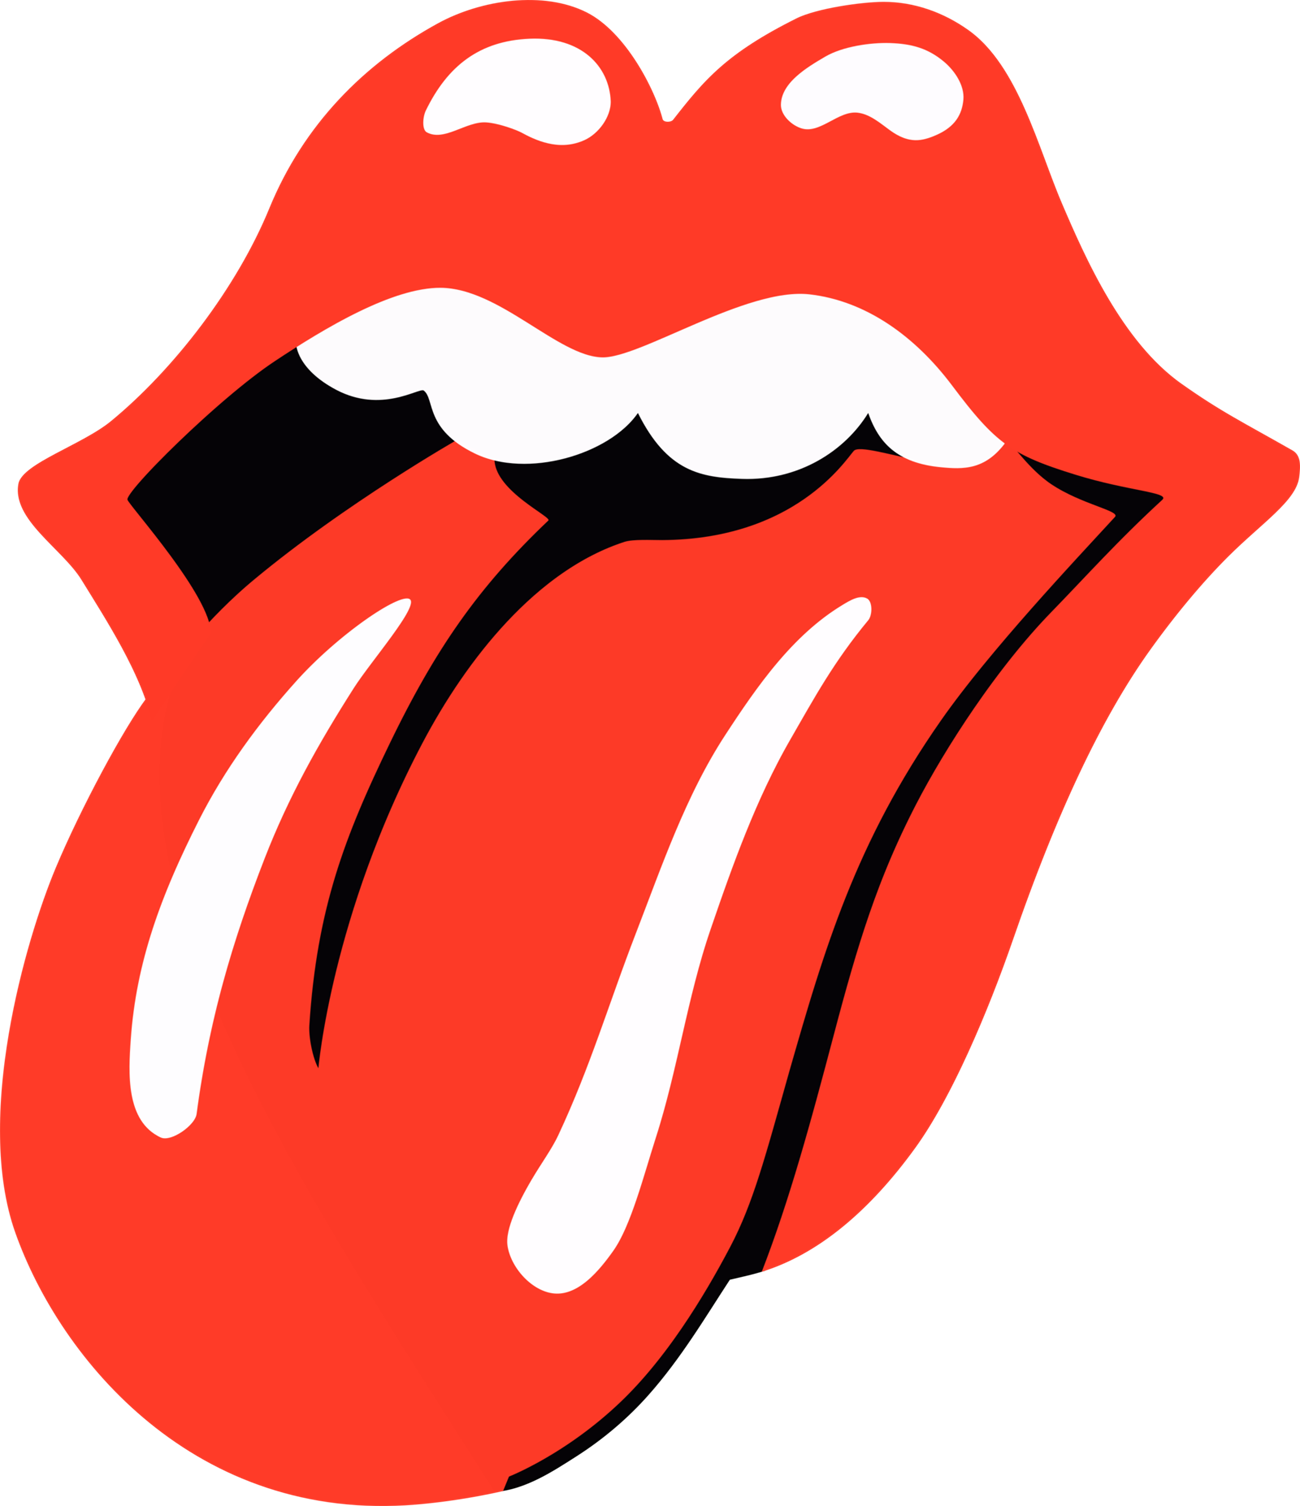 Symbol choice image meaning. Rolling stones tongue png png stock